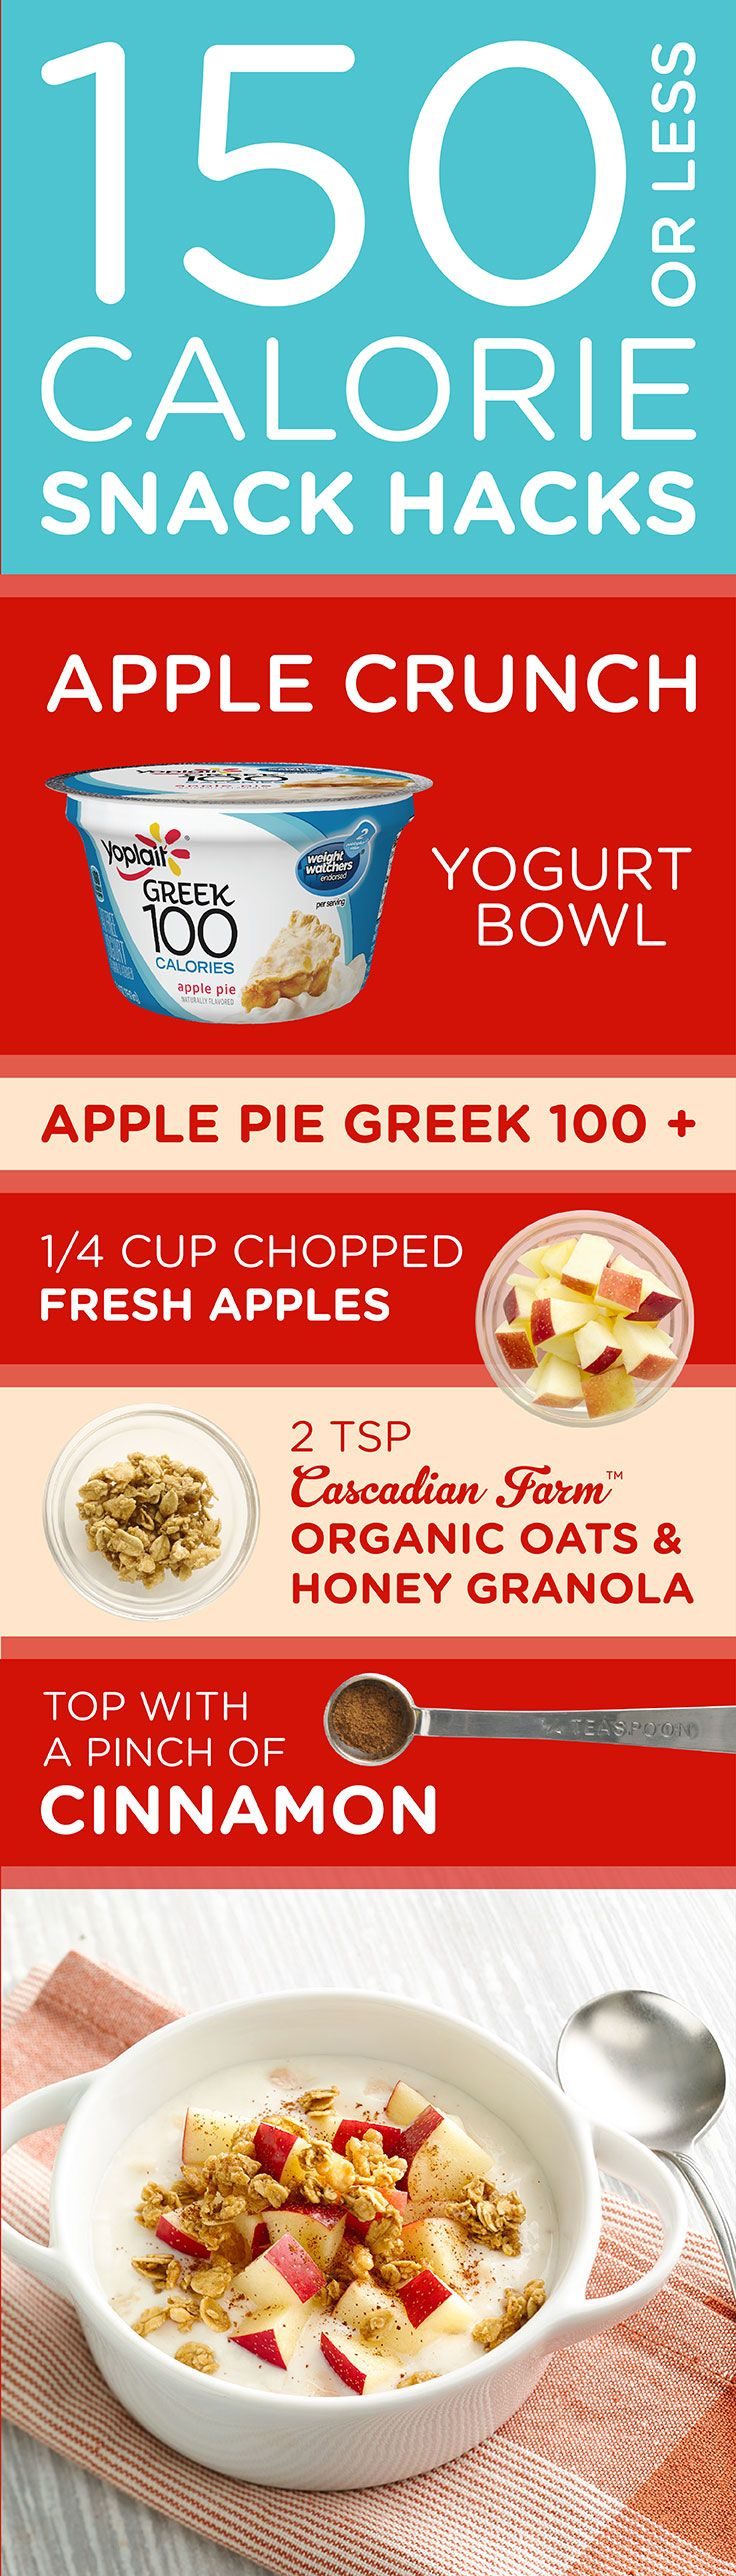 Love apples & cinnamon? Try this 150 Calorie Apple Crunch Yogurt Bowl- Add a 1/4 C chopped apples, 2 tsp Cascadian Farms Organic Oats & Honey Vanilla, and top with a pinch of cinnamon.